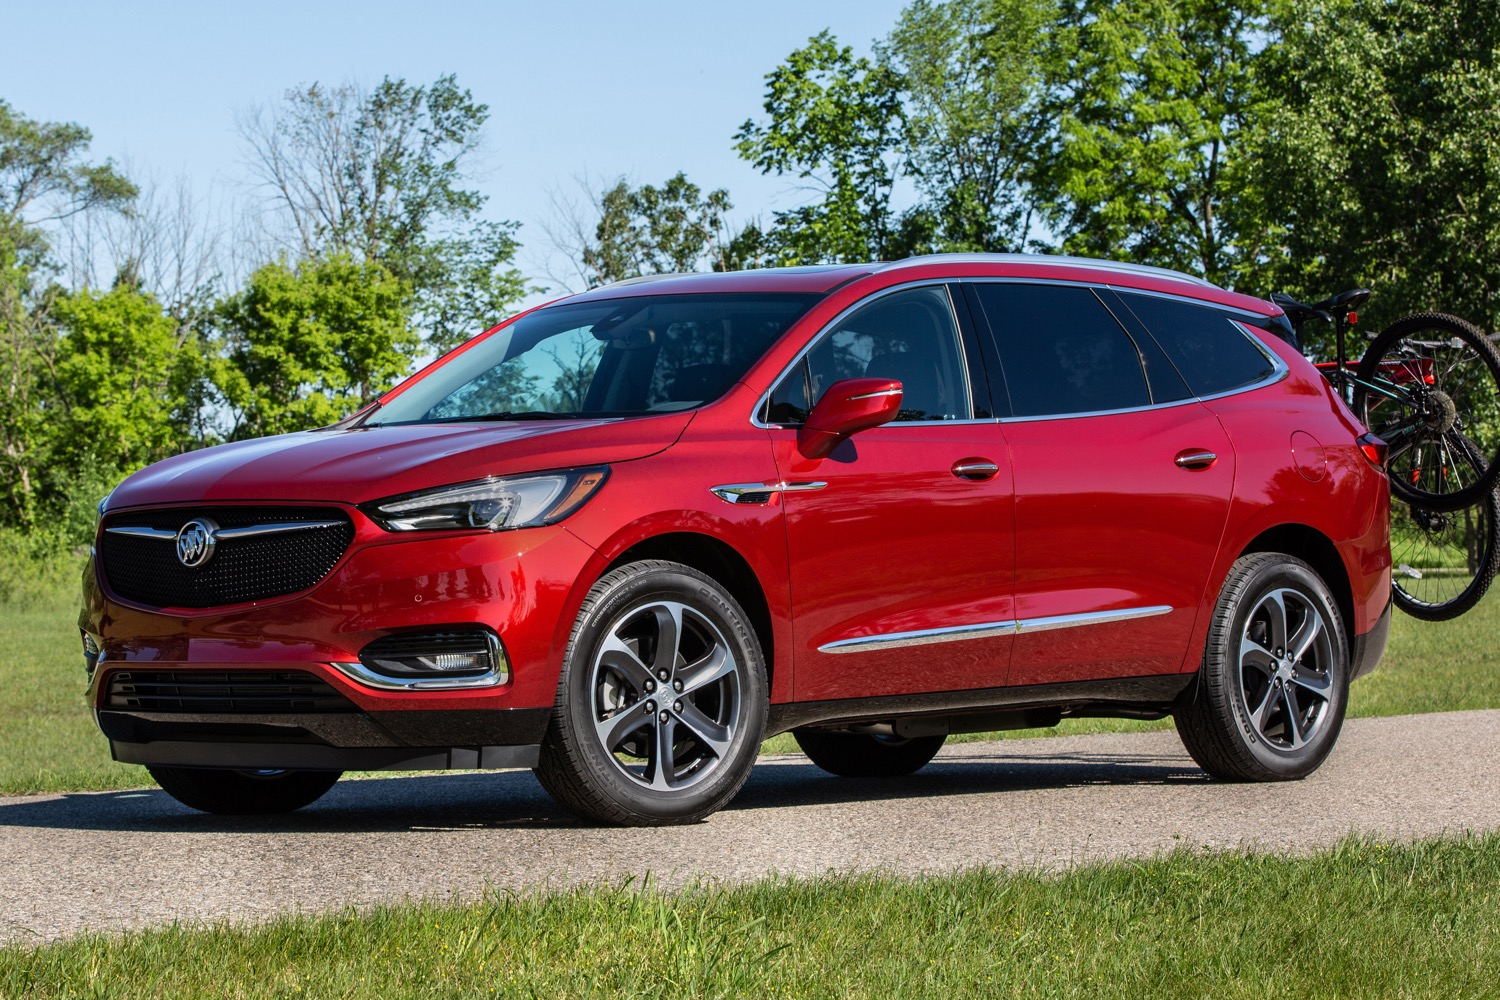 Buick Enclave Discount Cuts Price $5,600 March 2020 | Gm 2022 Buick Enclave Awd, Build, Lease